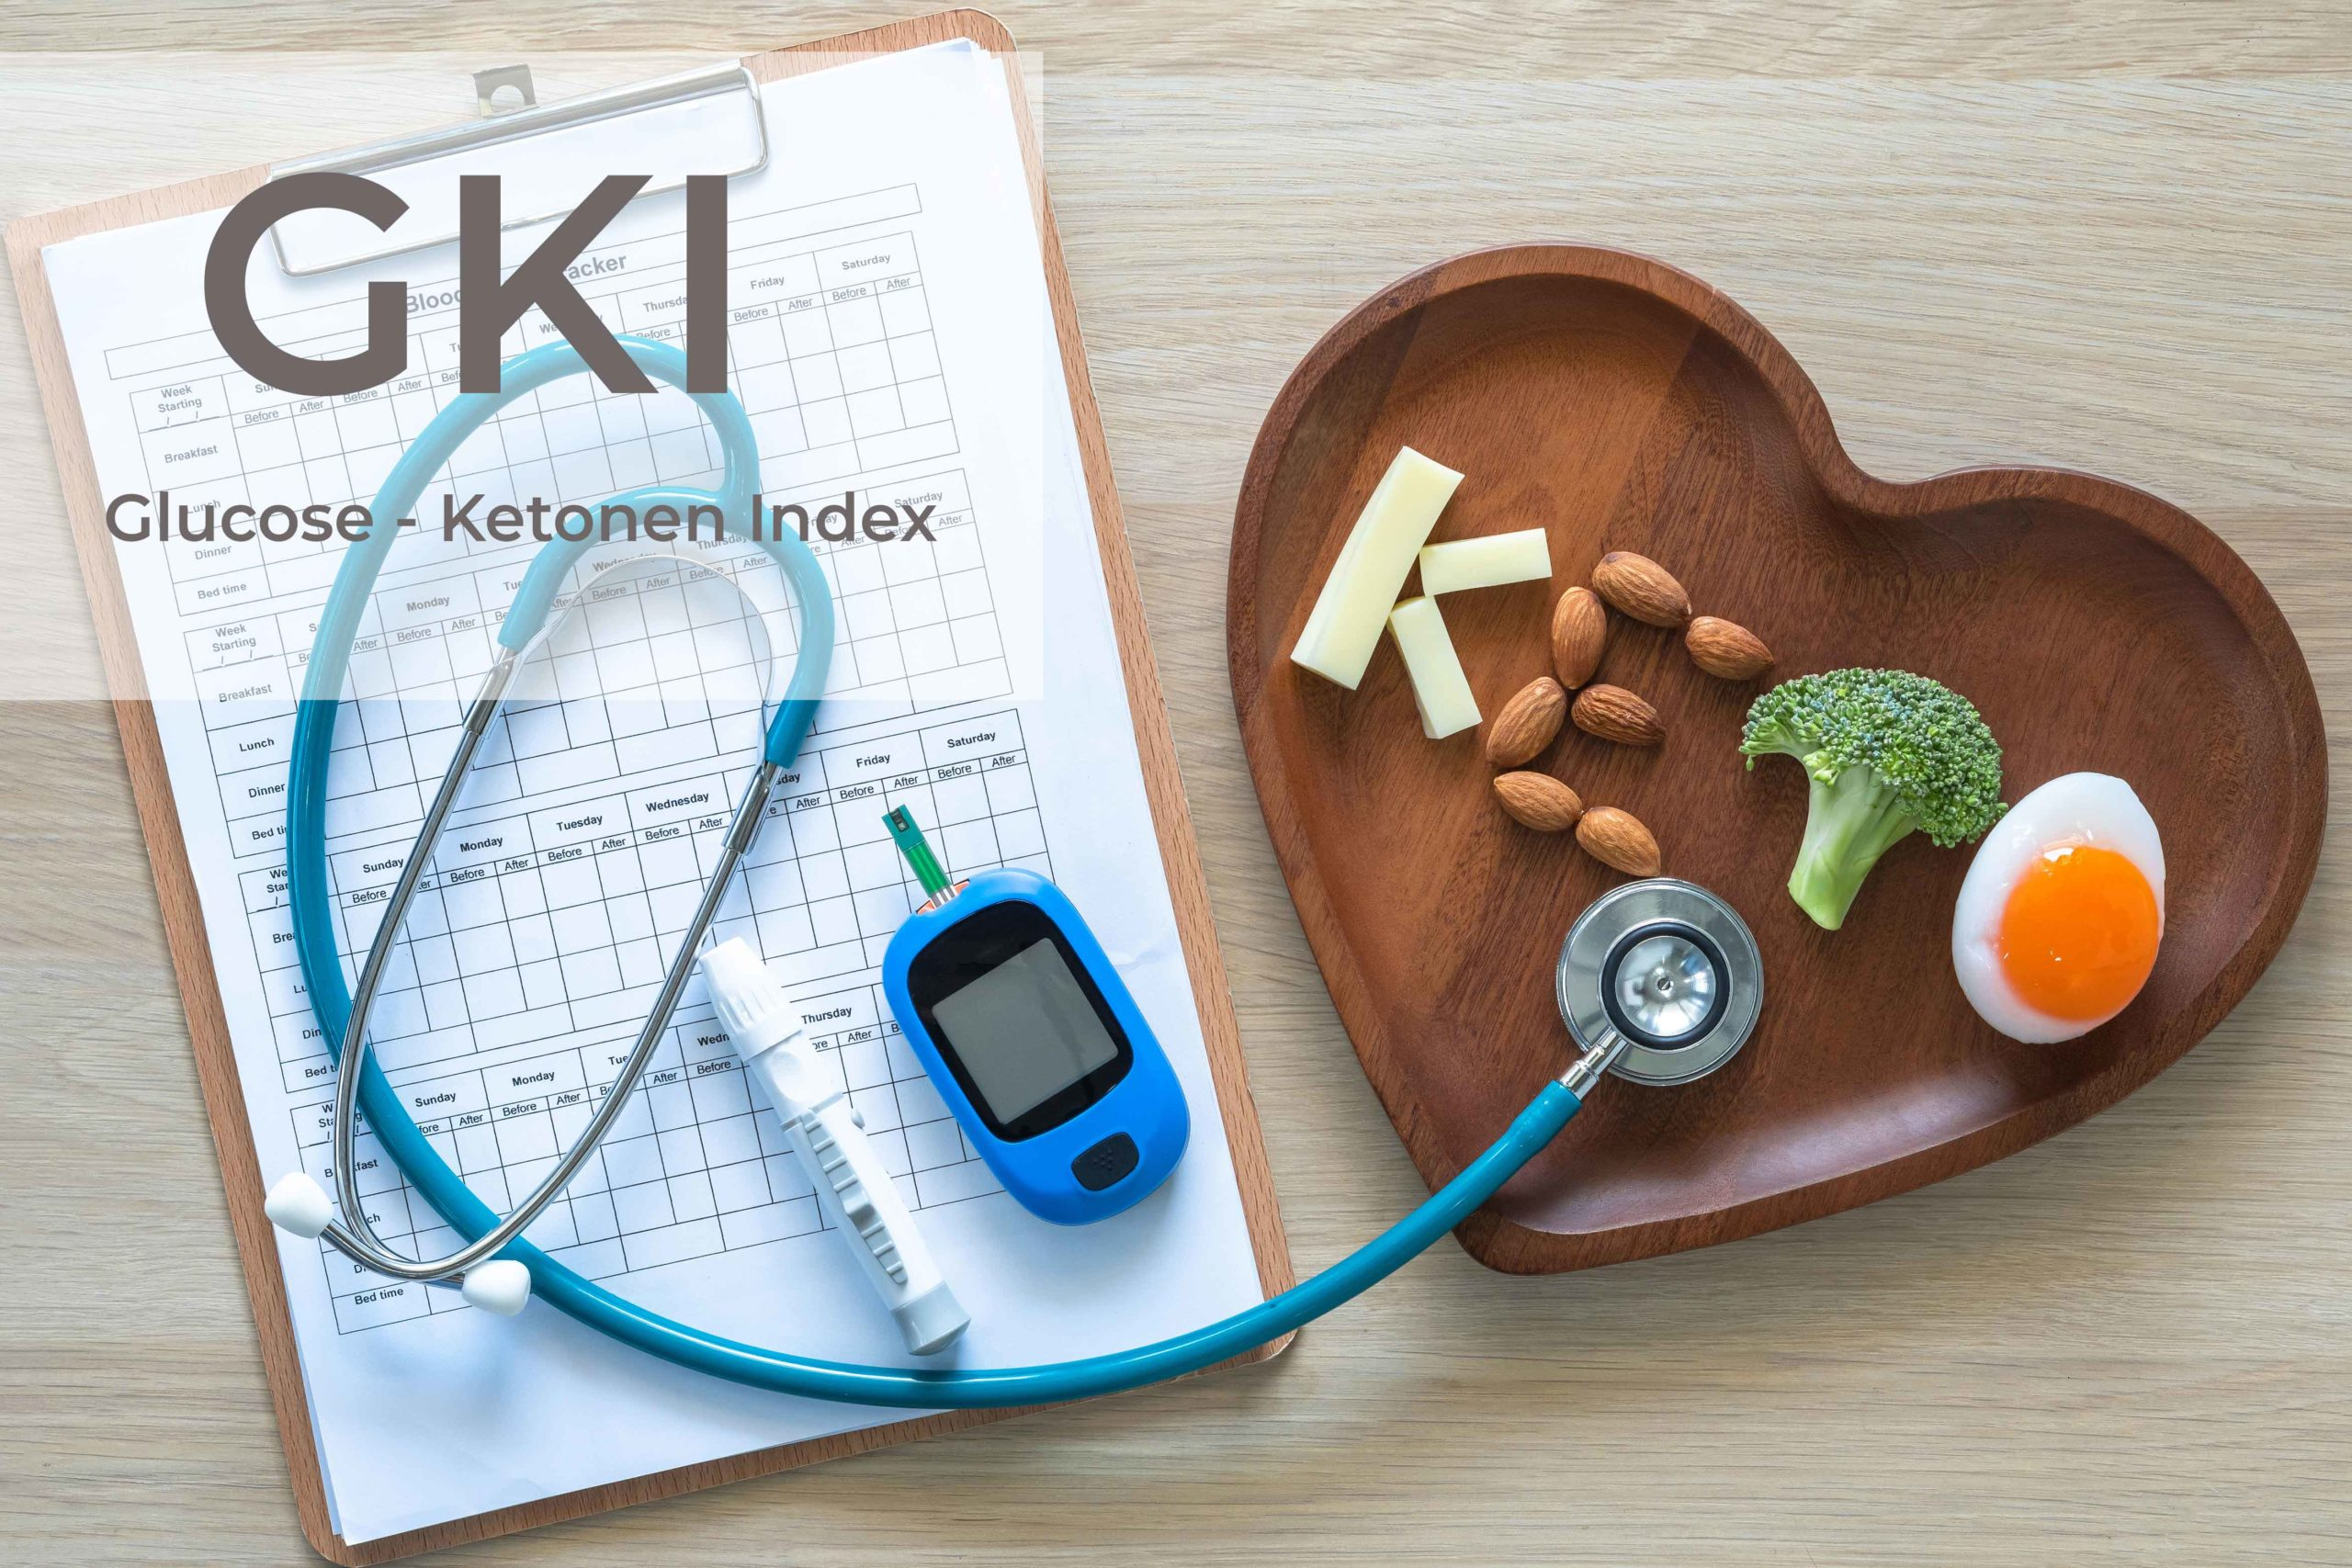 GKI glucose ketonen index